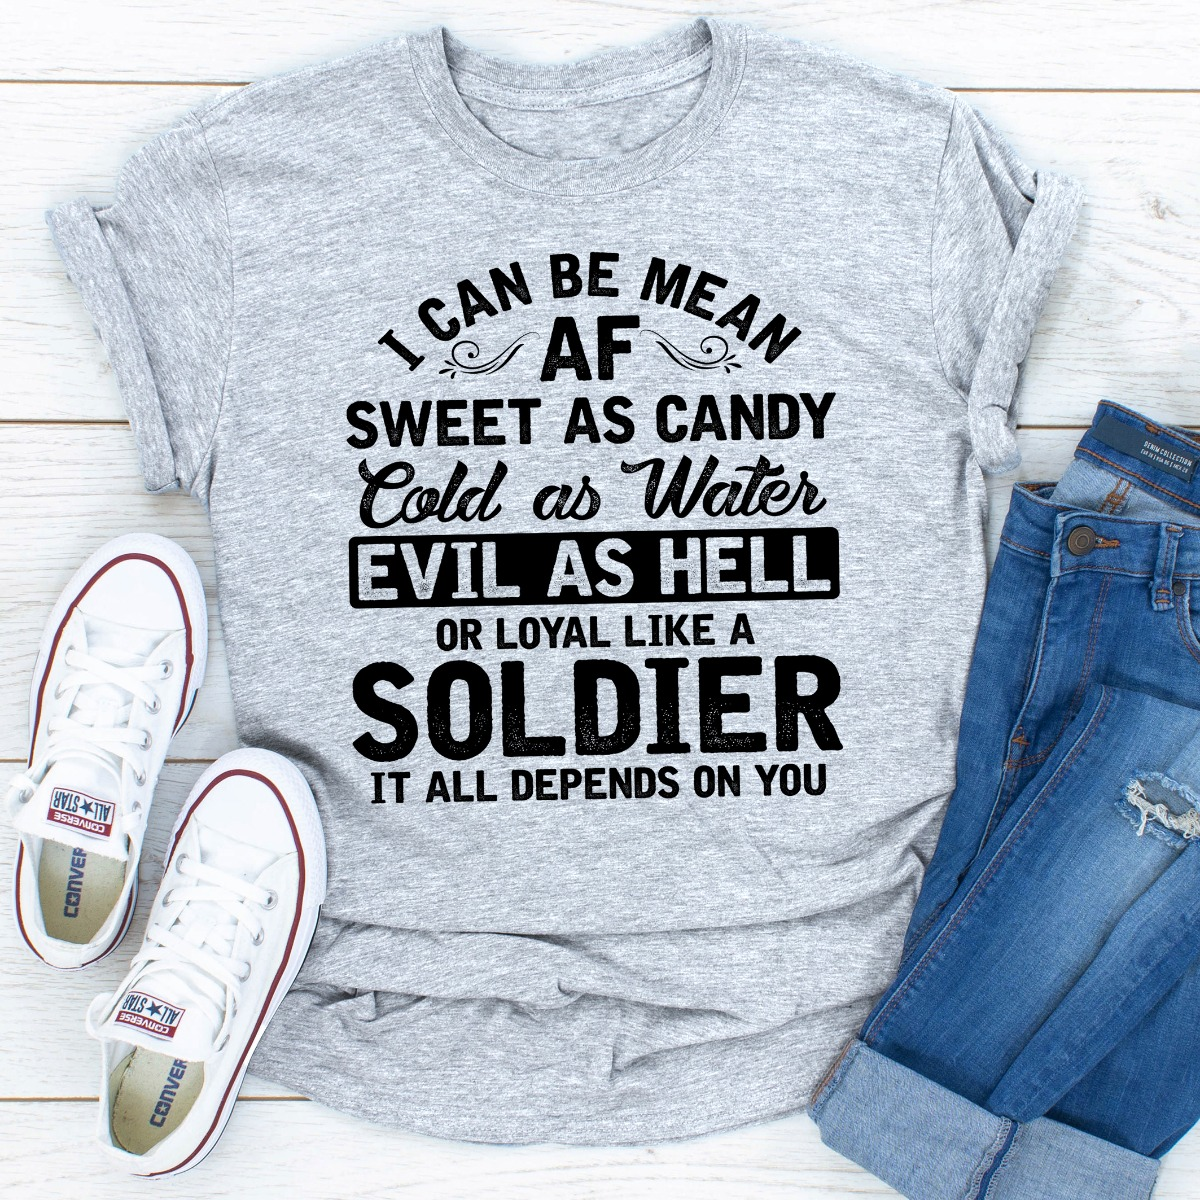 I Can Be Mean AF Sweet as Candy Cold as Water Evil As Hell or Loyal Like a Soldier